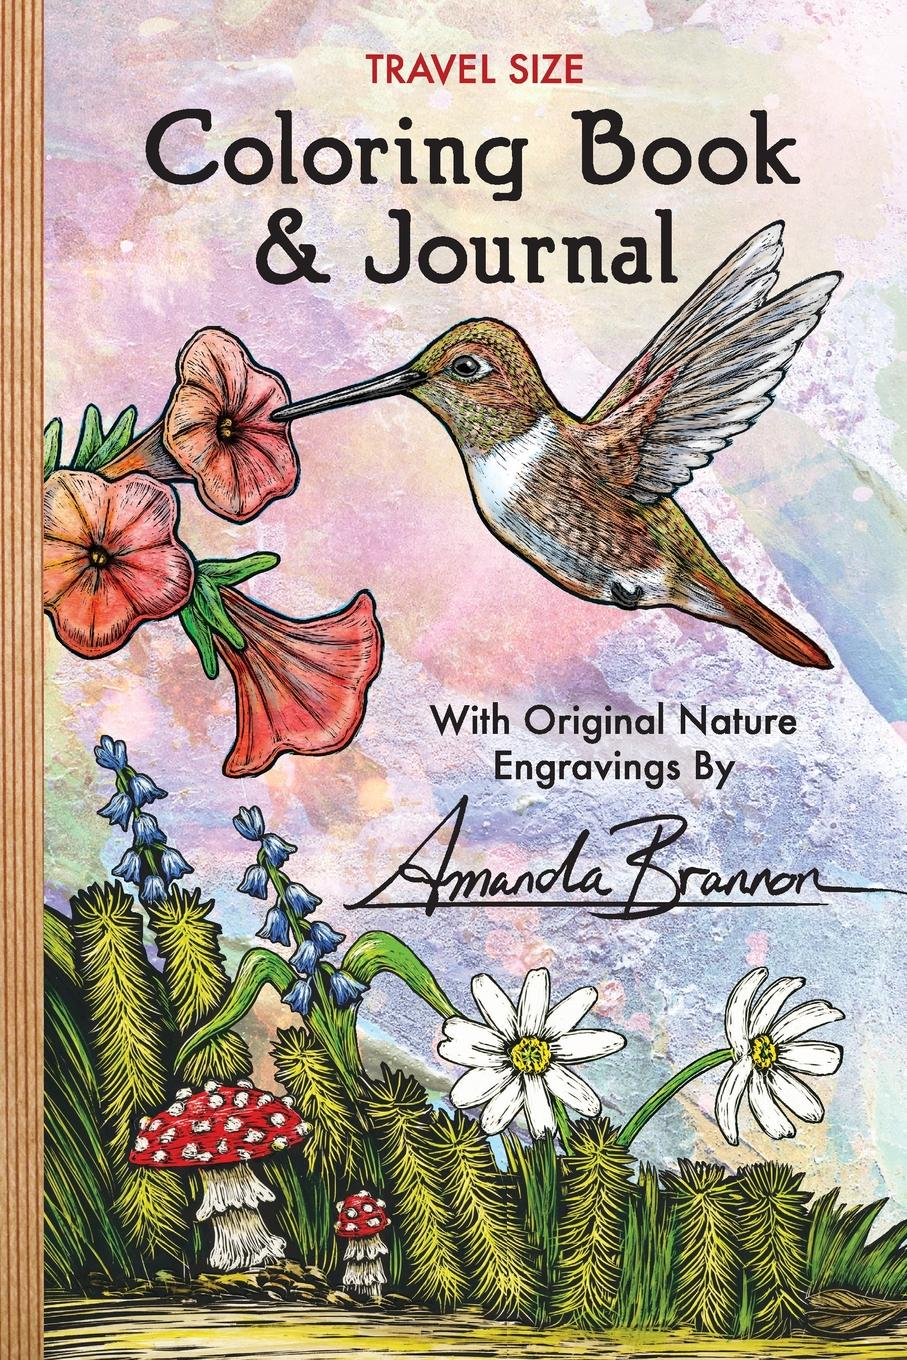 Travel Size Coloring Book . Journal. With Original Nature Engravings by Amanda Brannon косметика travel size